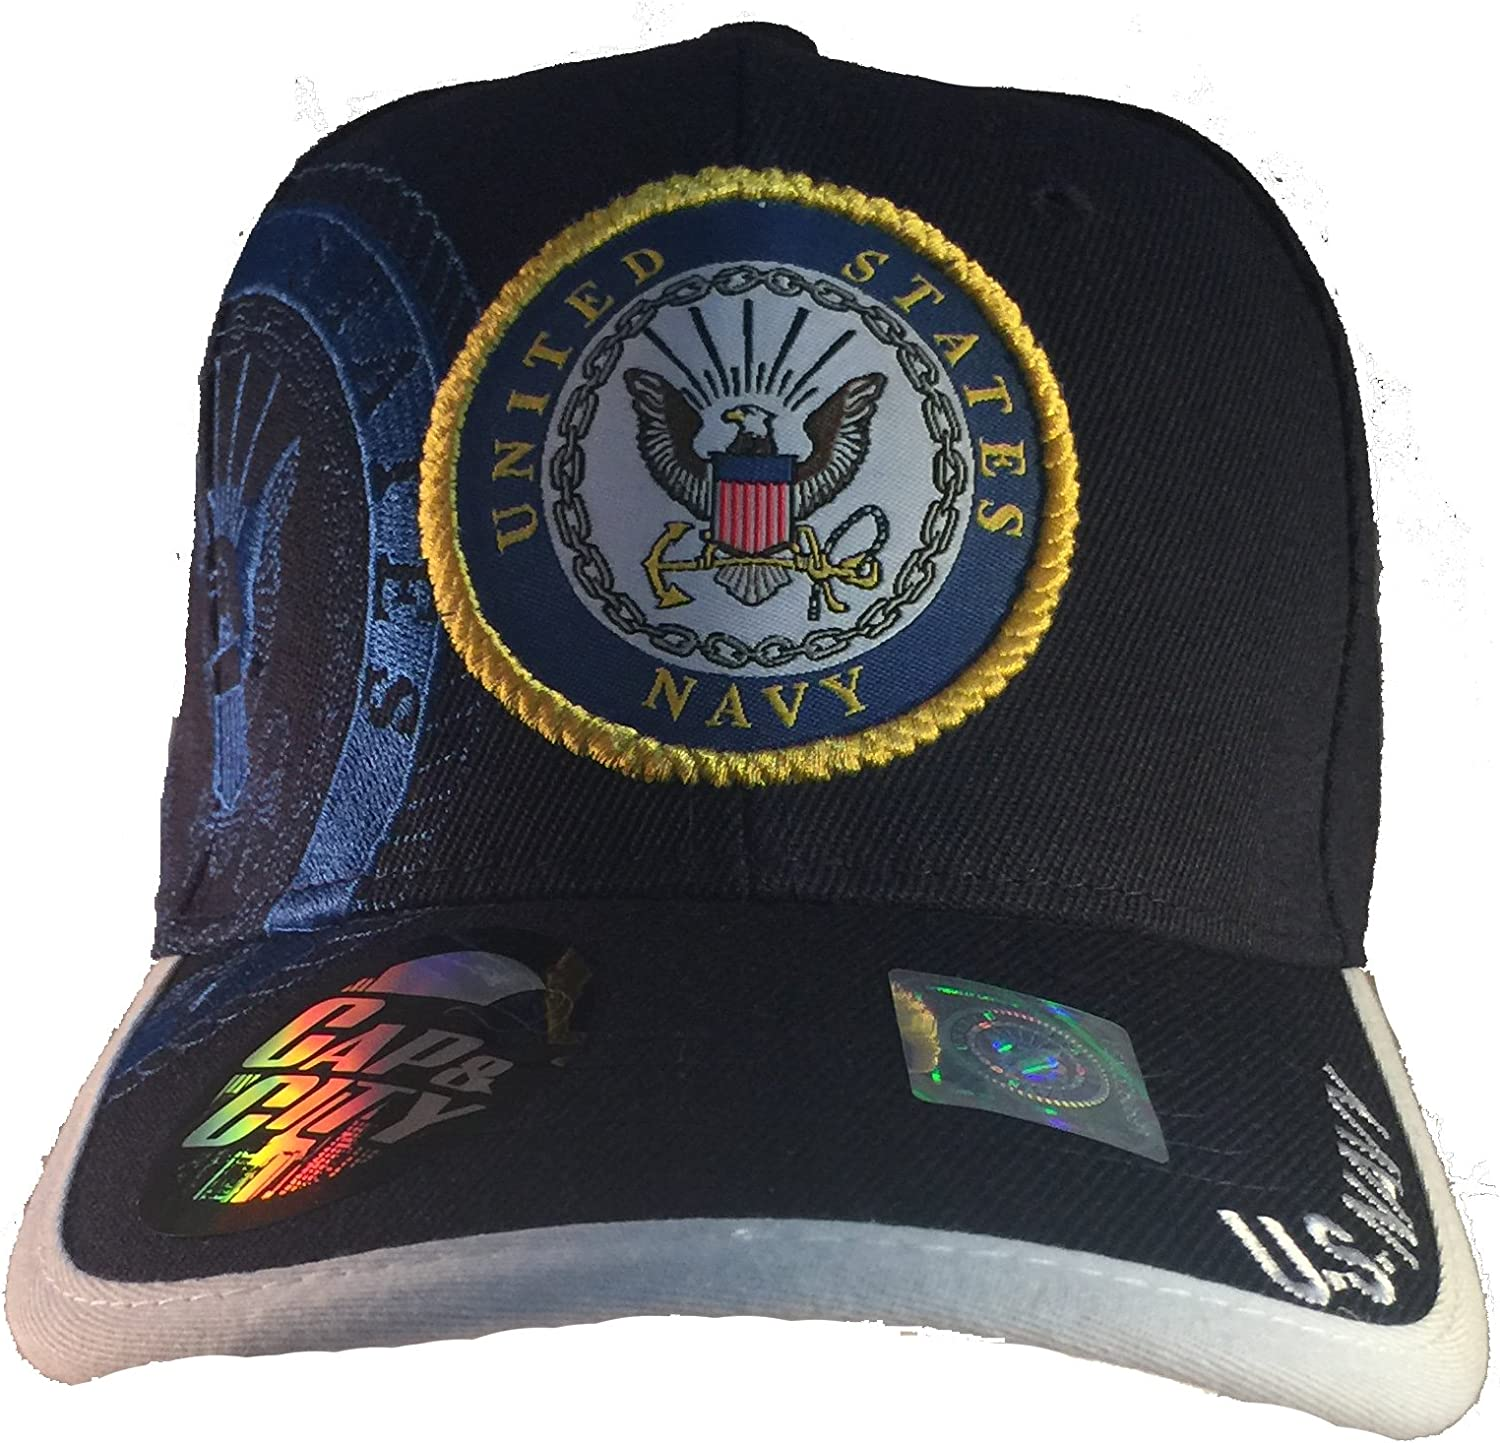 EZ Gifts Officially Licensed US NAVY Military Baseball Cap Hat NEW